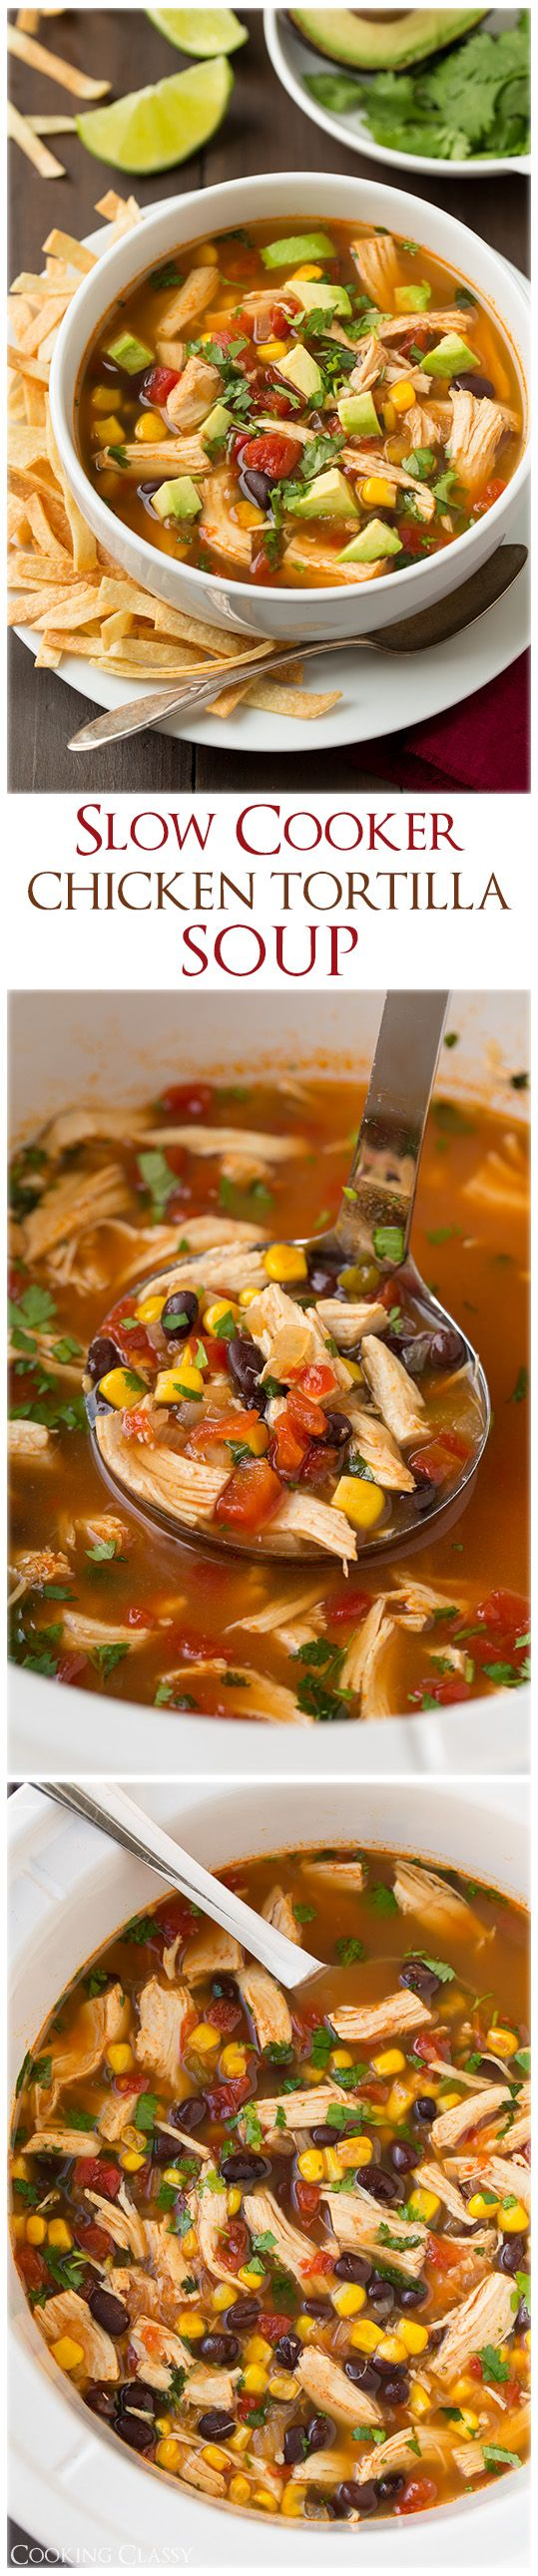 Slow Cooker Chicken Tortilla Soup – my whole family loved this! Adding it to our dinner rotation!